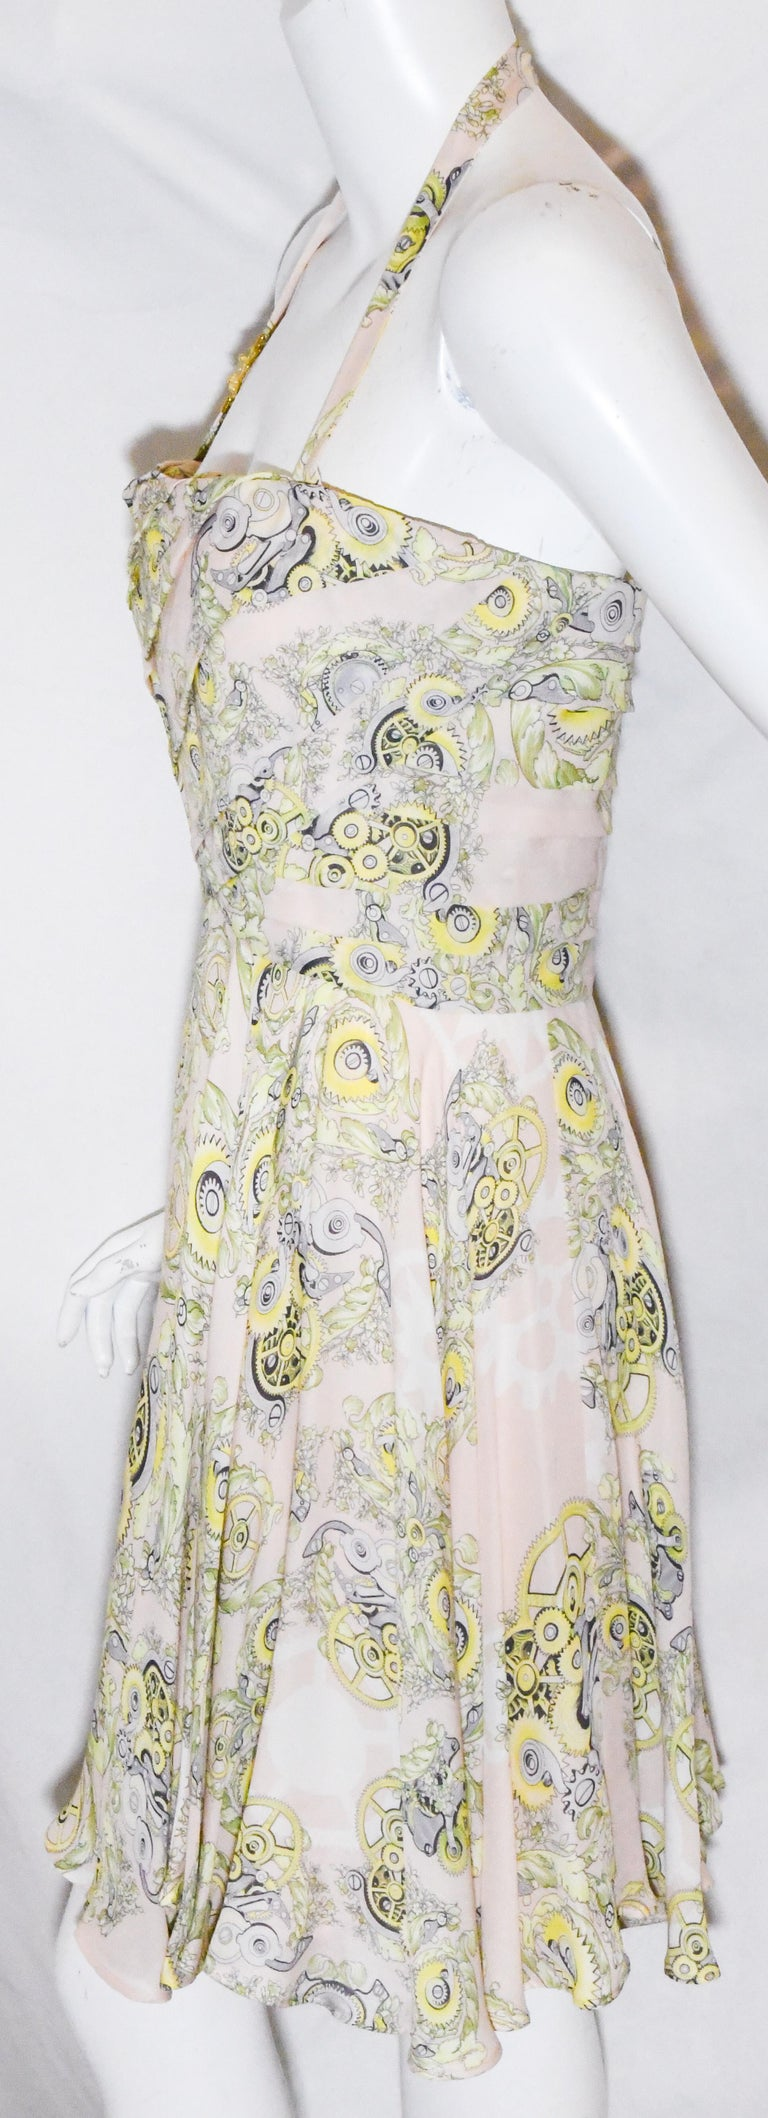 Versace Collection halter top dress includes decorative brooch on shoulder strap.  This flirty summer style dress  is a softer side to the Versace House criteria.   The print combines the mechanical features with beautiful flowers. It is a short